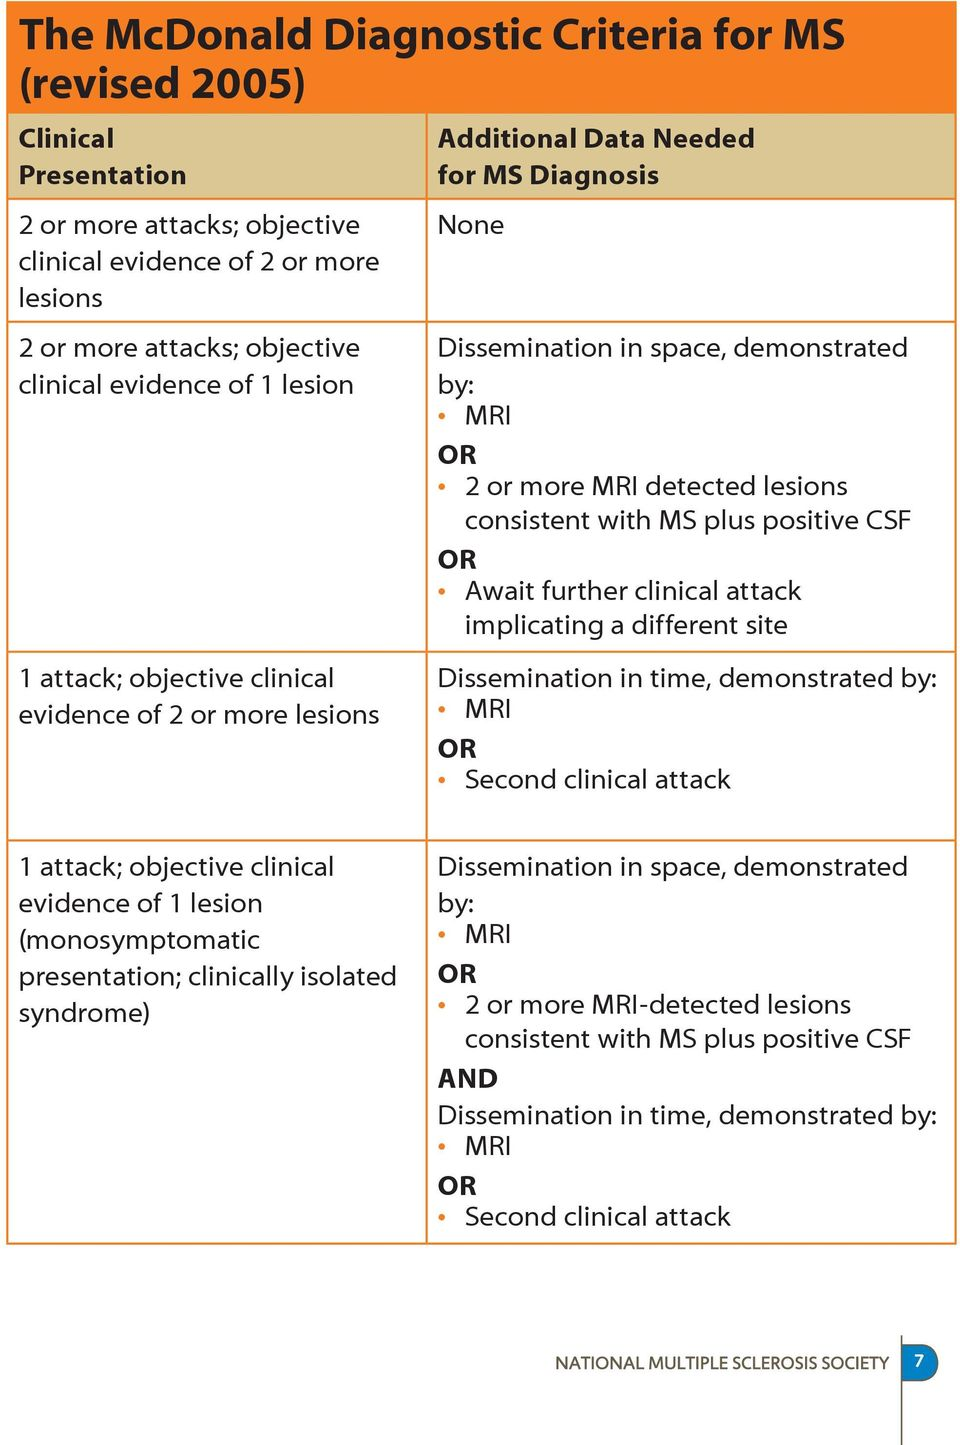 consistent with MS plus positive CSF OR Await further clinical attack implicating a different site Dissemination in time, demonstrated by: MRI OR Second clinical attack 1 attack; objective clinical